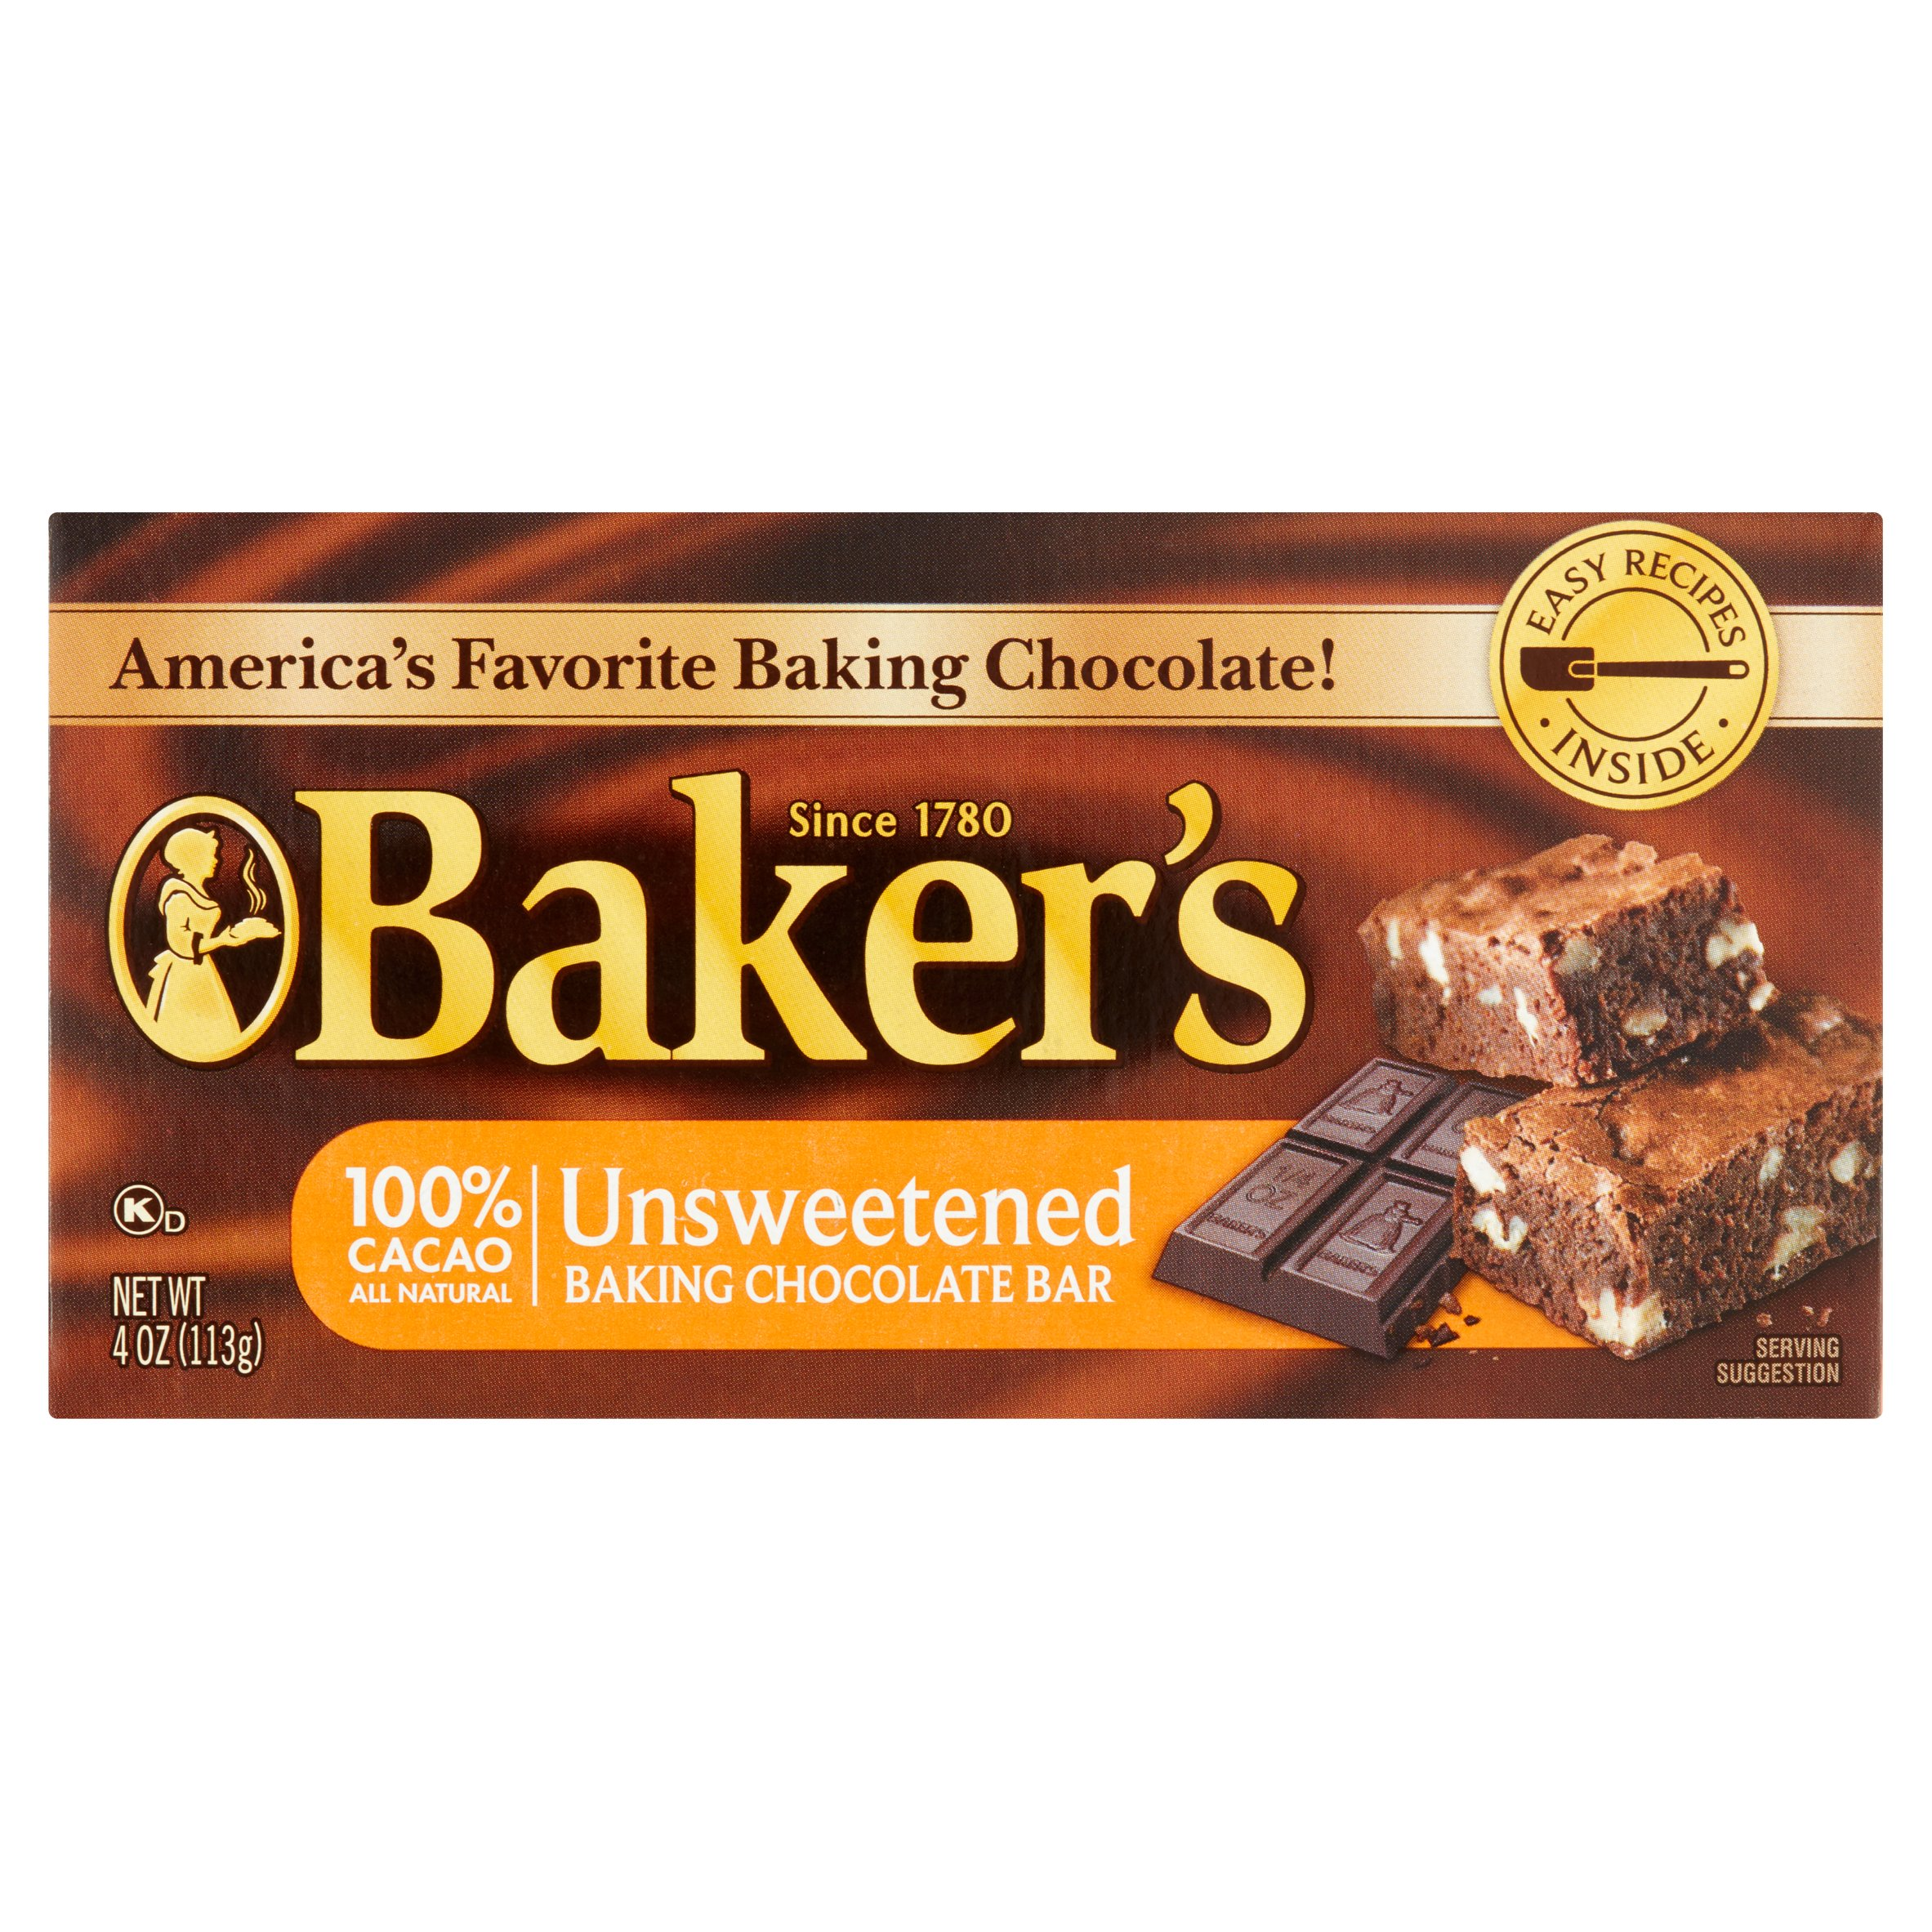 Baker's 100% Cacao Unsweetened Baking Chocolate Bar, 4.0 OZ by Kraft Foods Group, Inc.